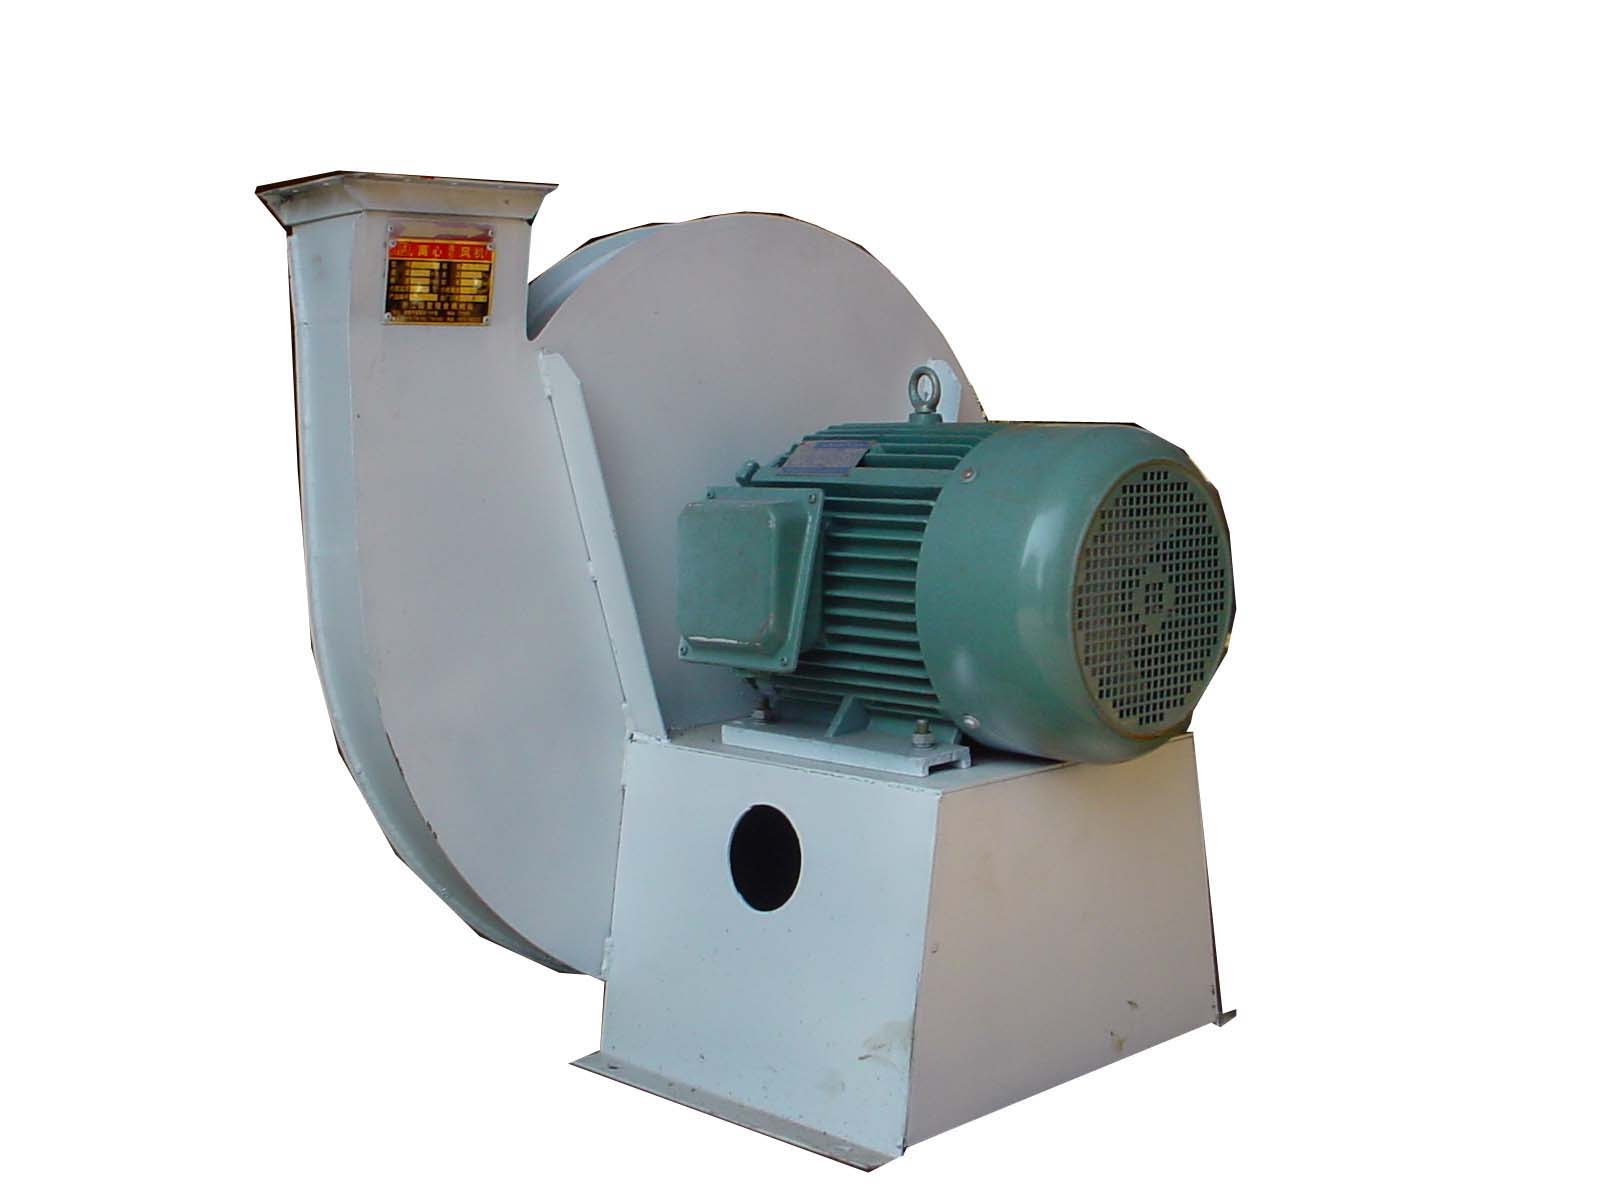 Blowers High Efficient Centrifugal Fans OEM Centrifugal Fans and #733F24